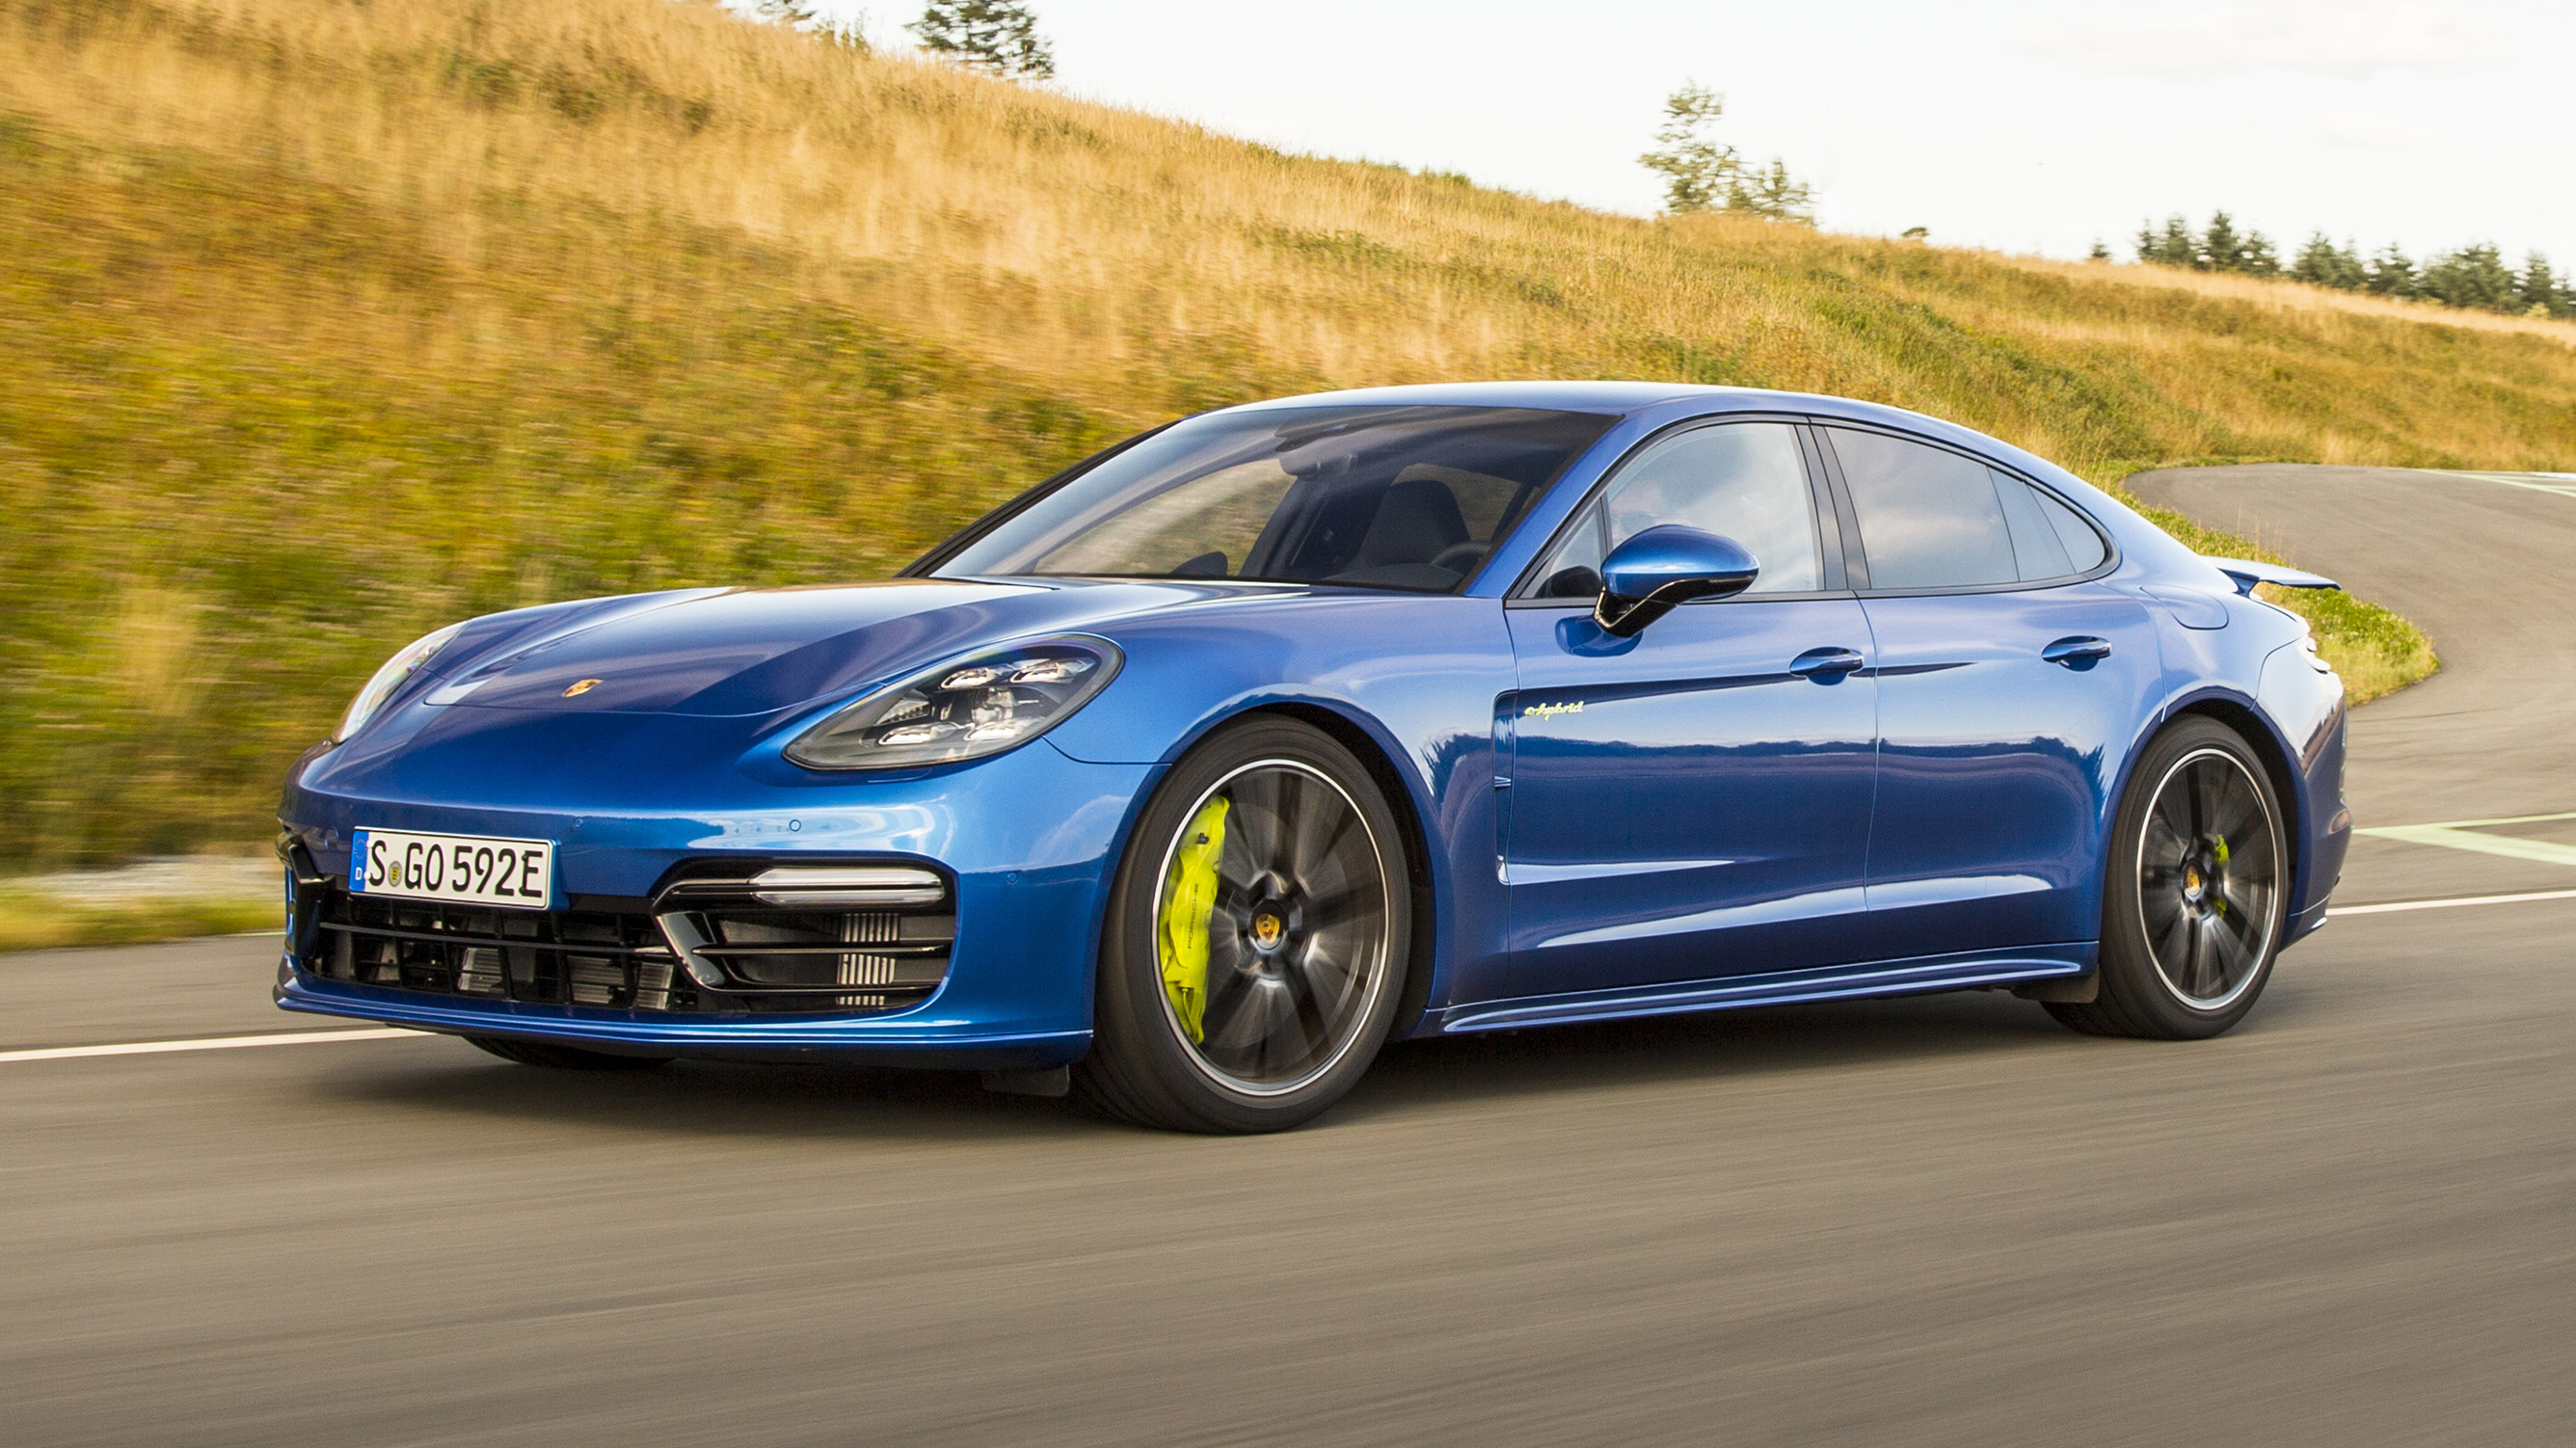 Porsche Panamera Review 671bhp Turbo S E Hybrid Driven